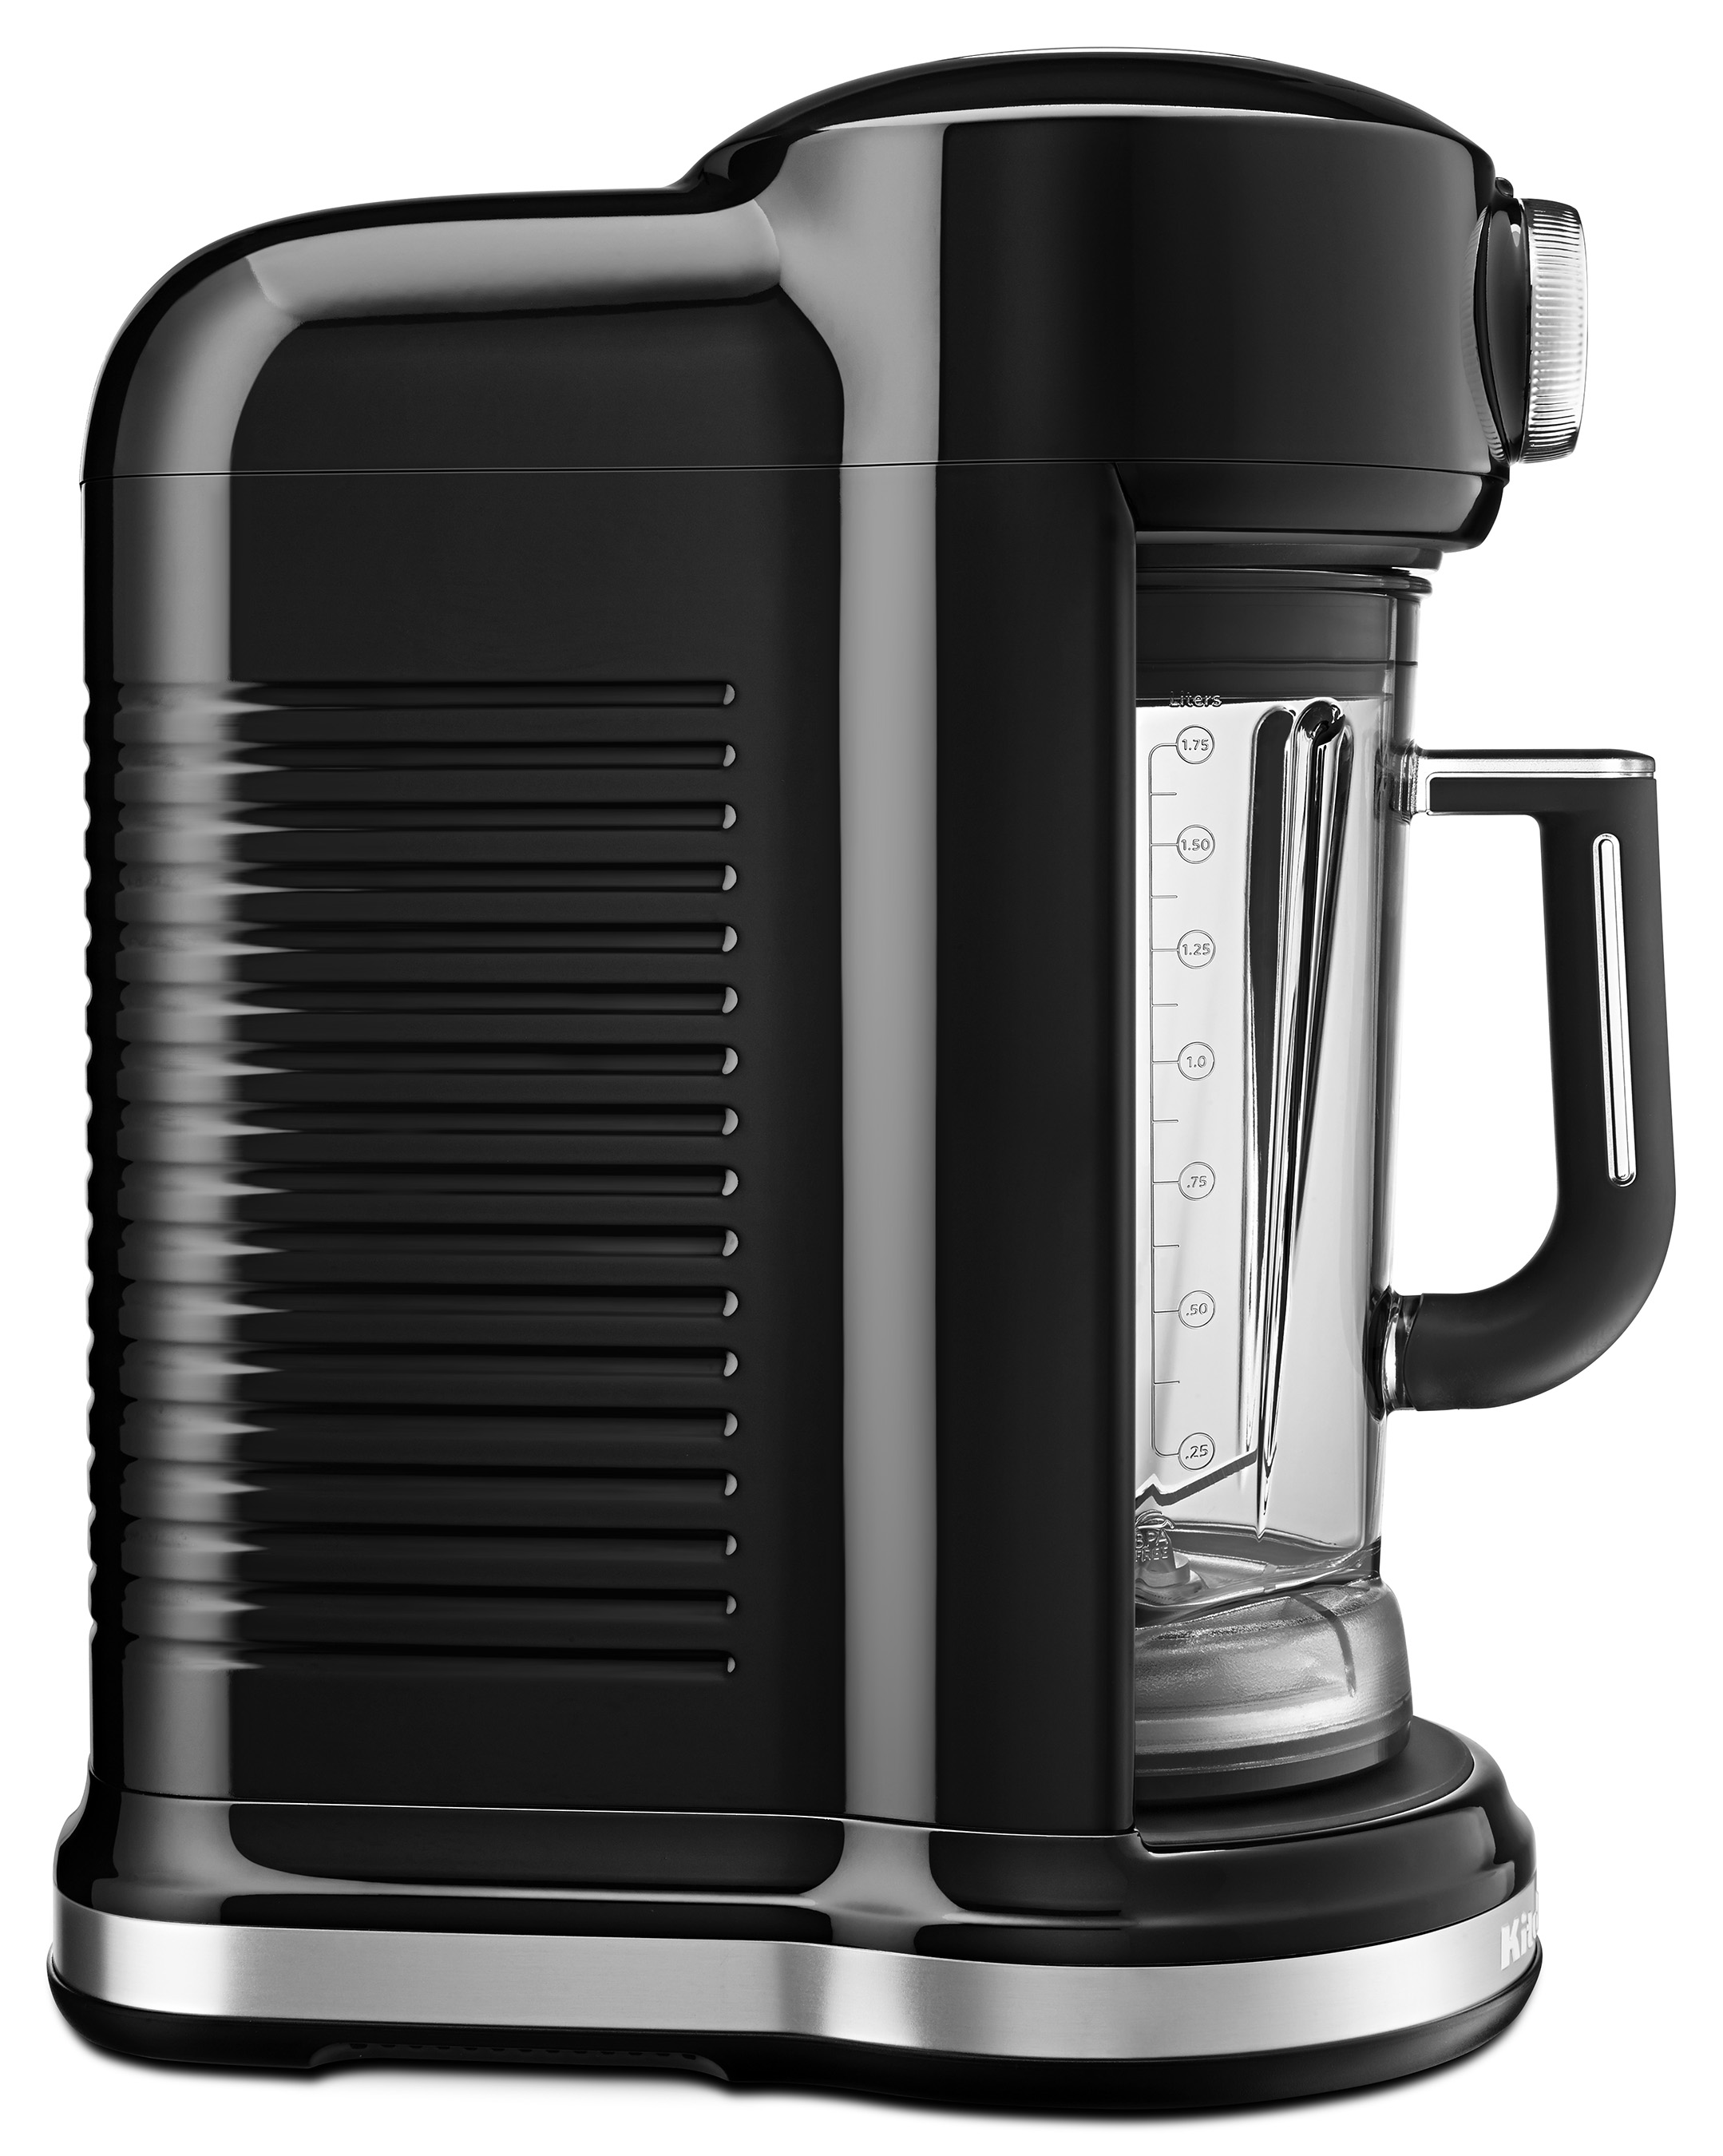 kitchenaid launches magnetic drive blender and new business unit